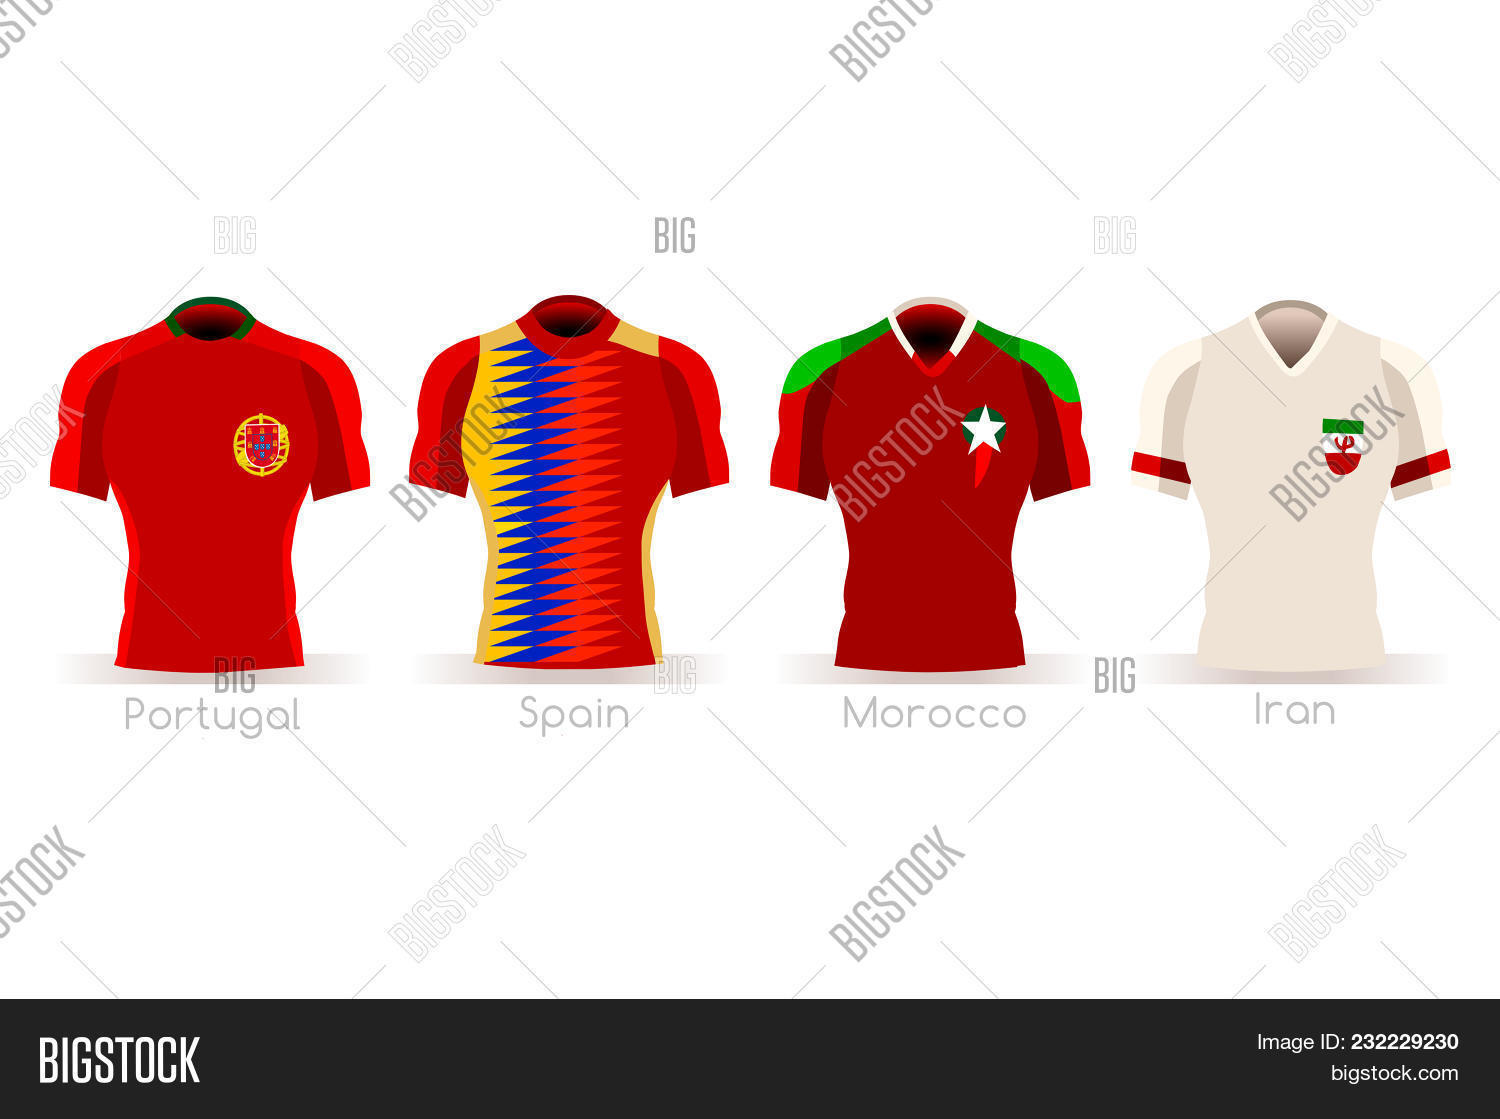 98c173cd1 Soccer world cup a group of players with team shirts flags and ball.  referee football vector illustration.